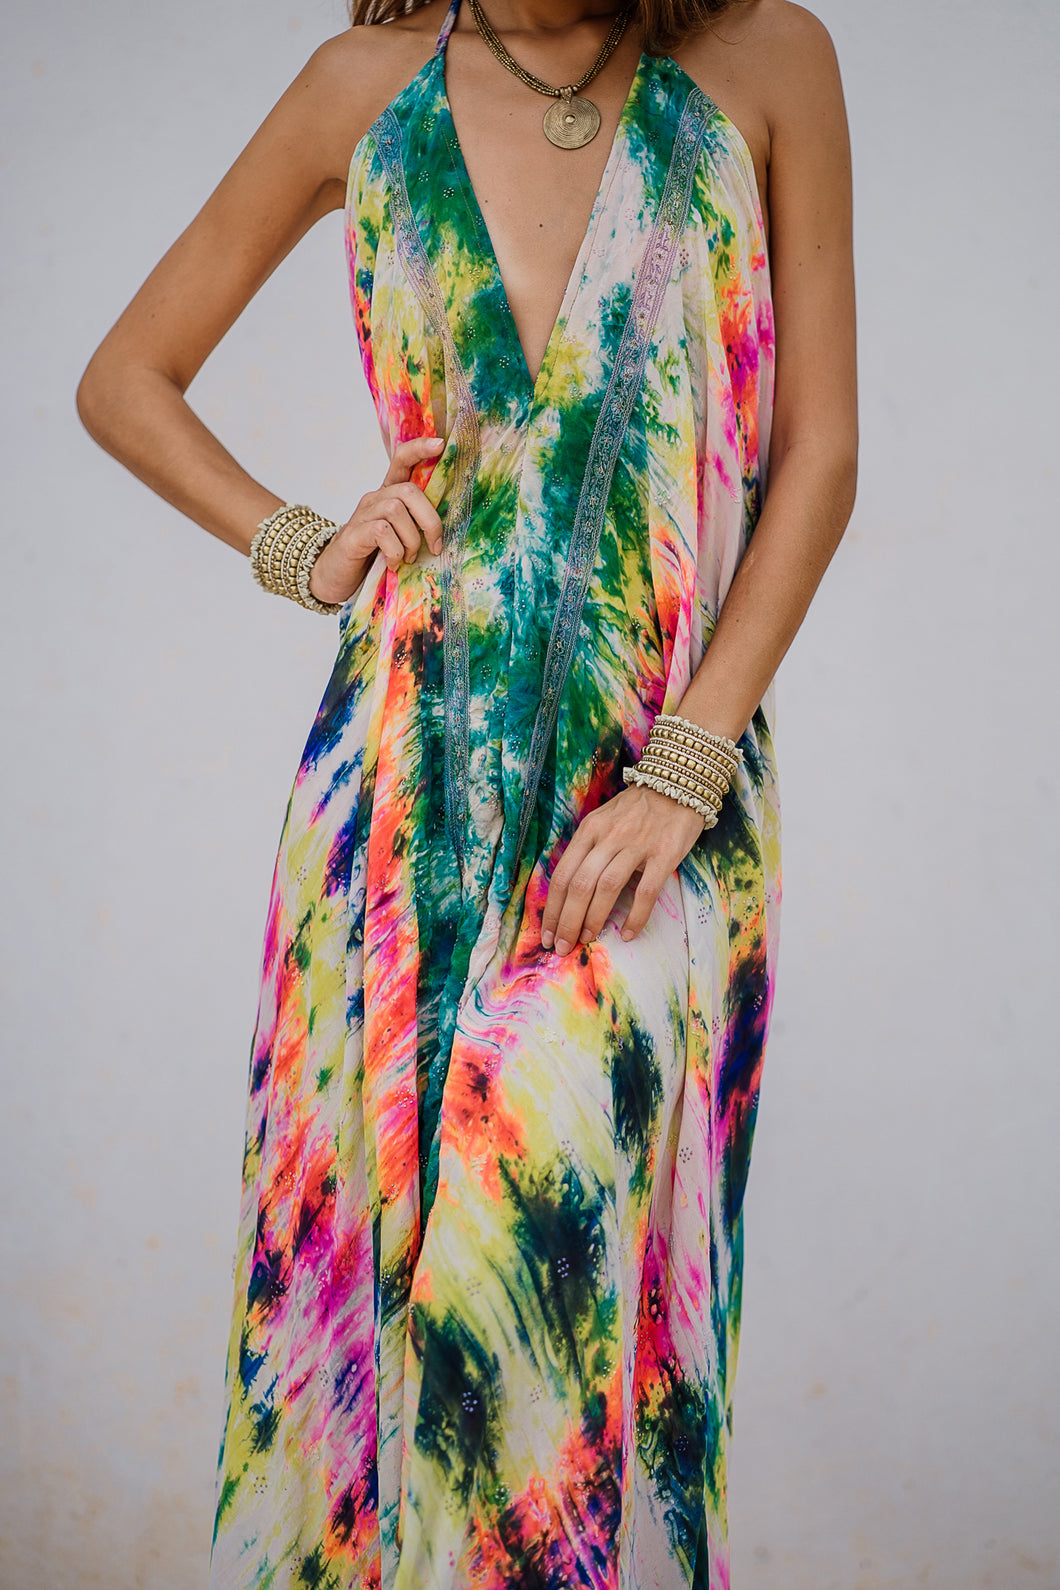 Sun Child Classic Dress - Anahata